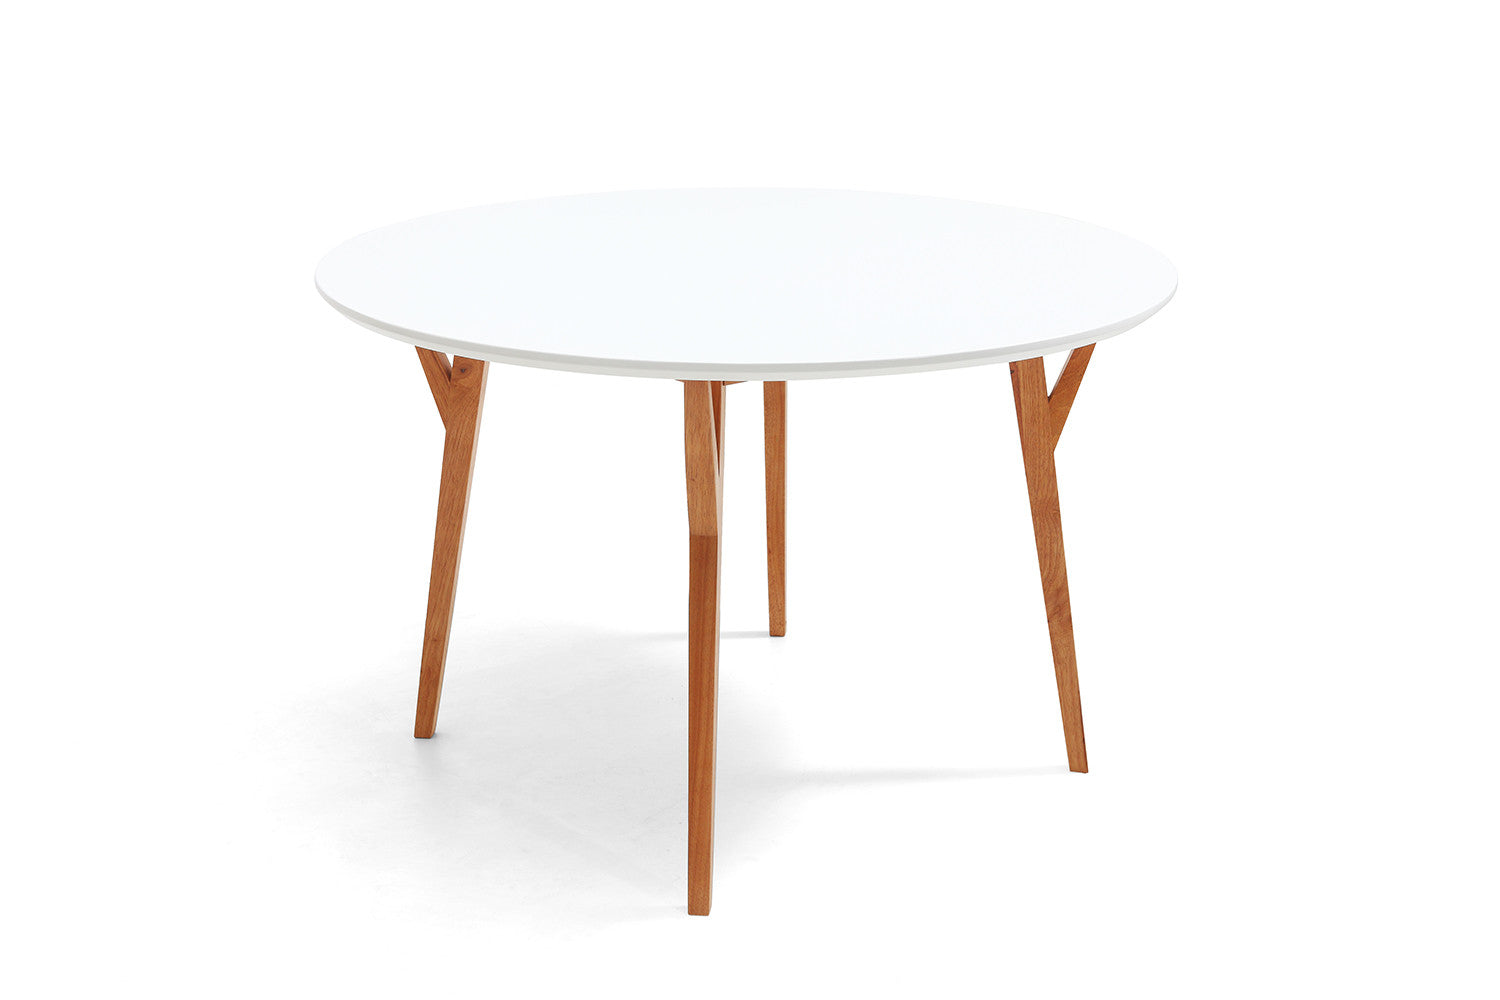 Table de salle manger ronde design scandinave moesa - Table de salle a manger ronde ...